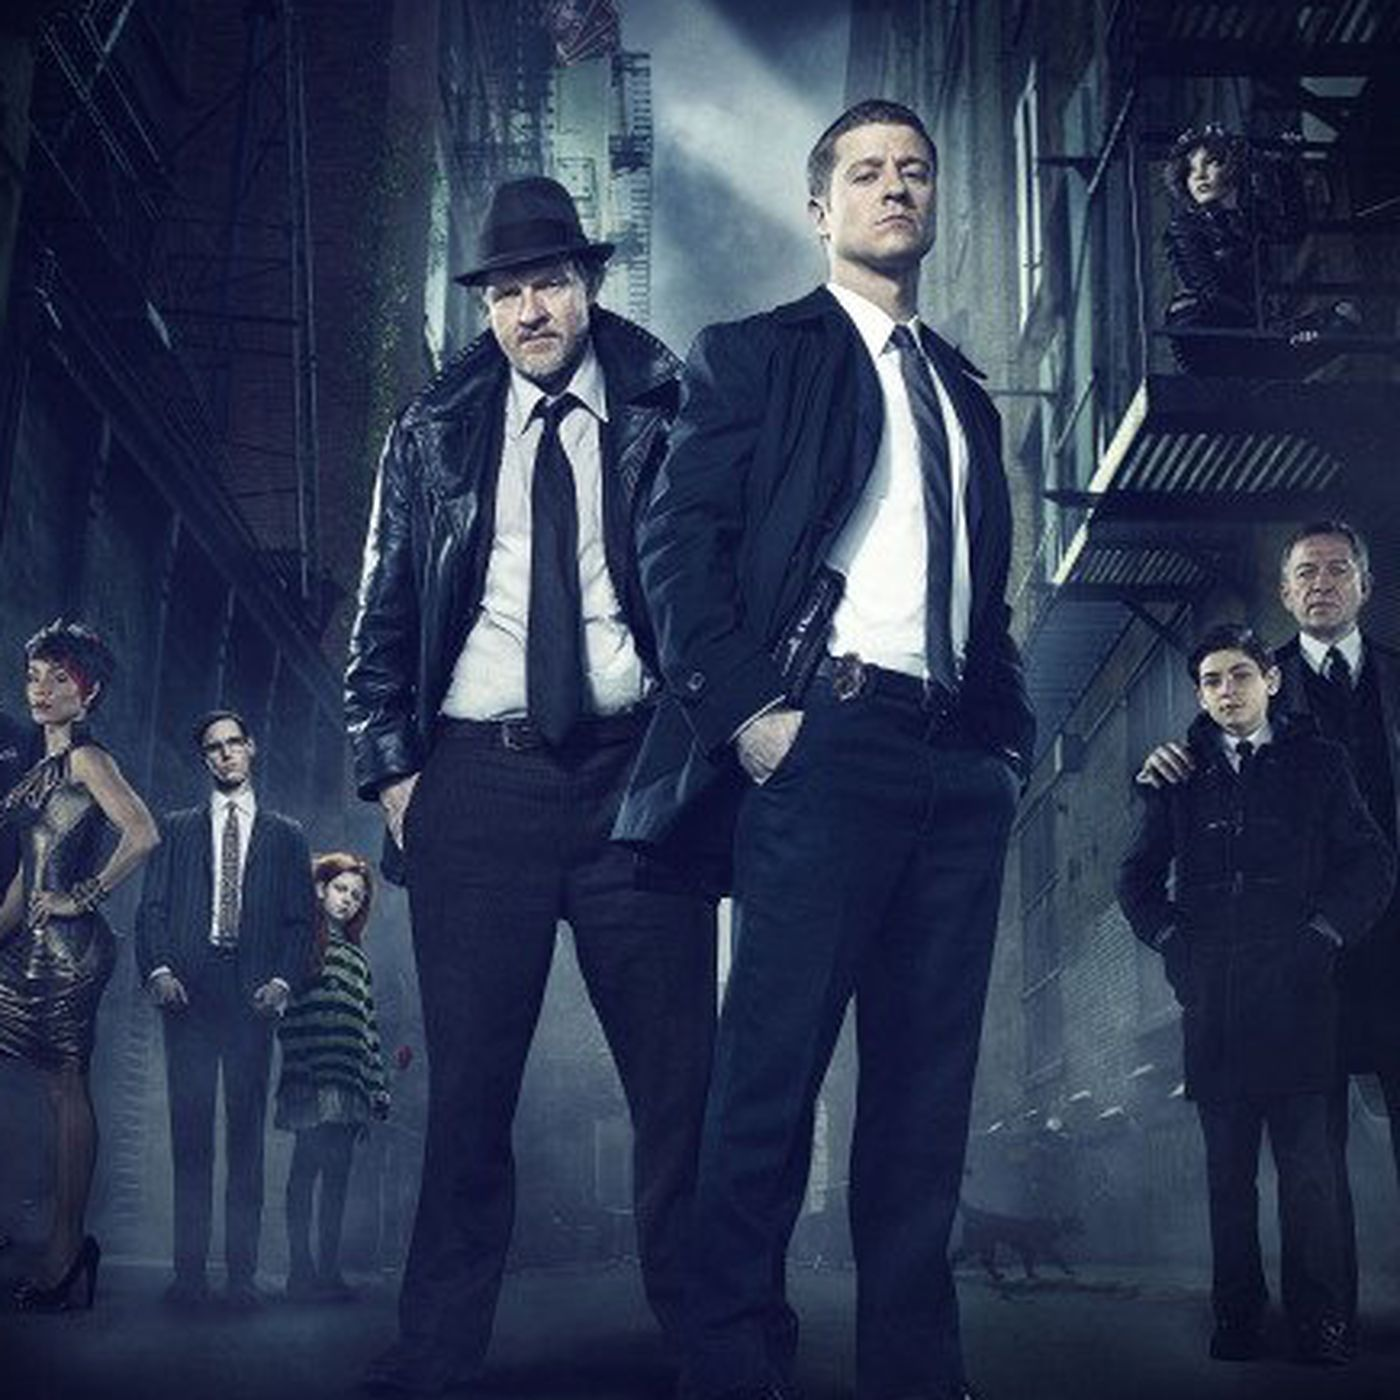 Fox is bringing Gotham back for a second season - The Verge